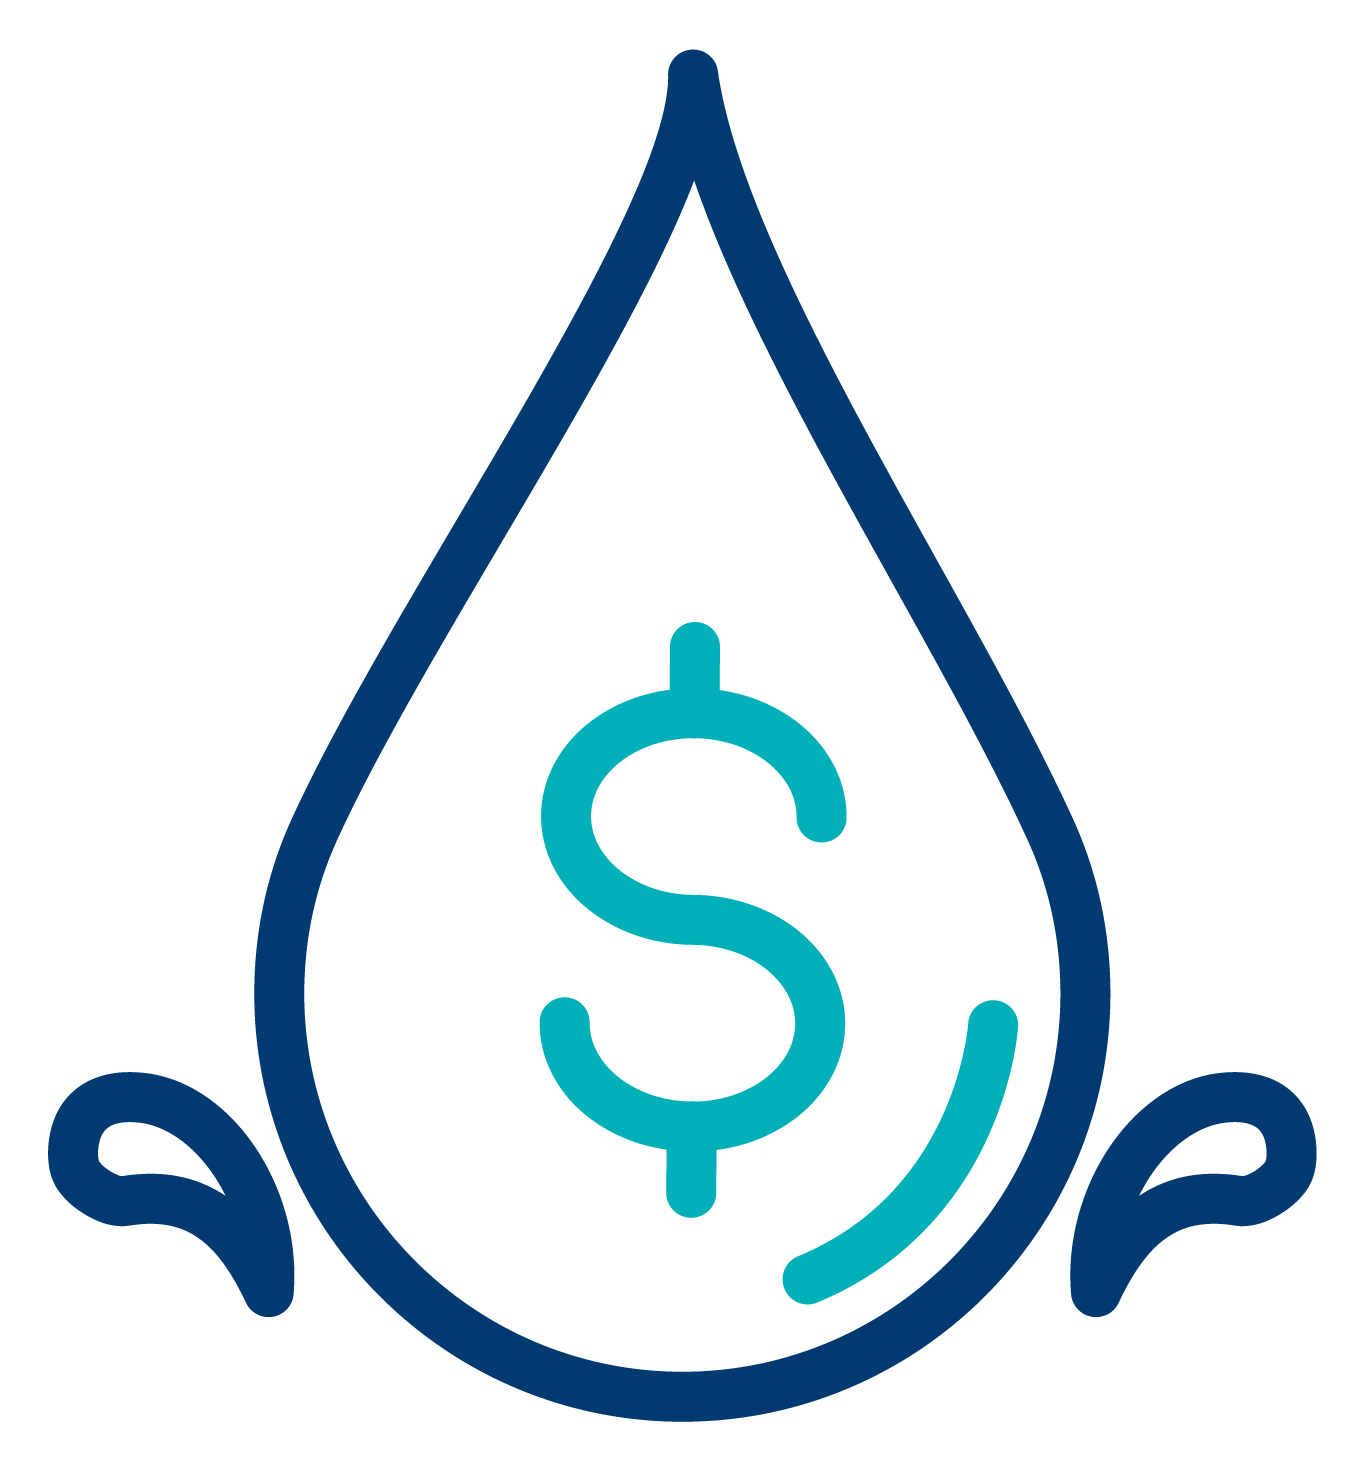 Drop of water with money symbol inside